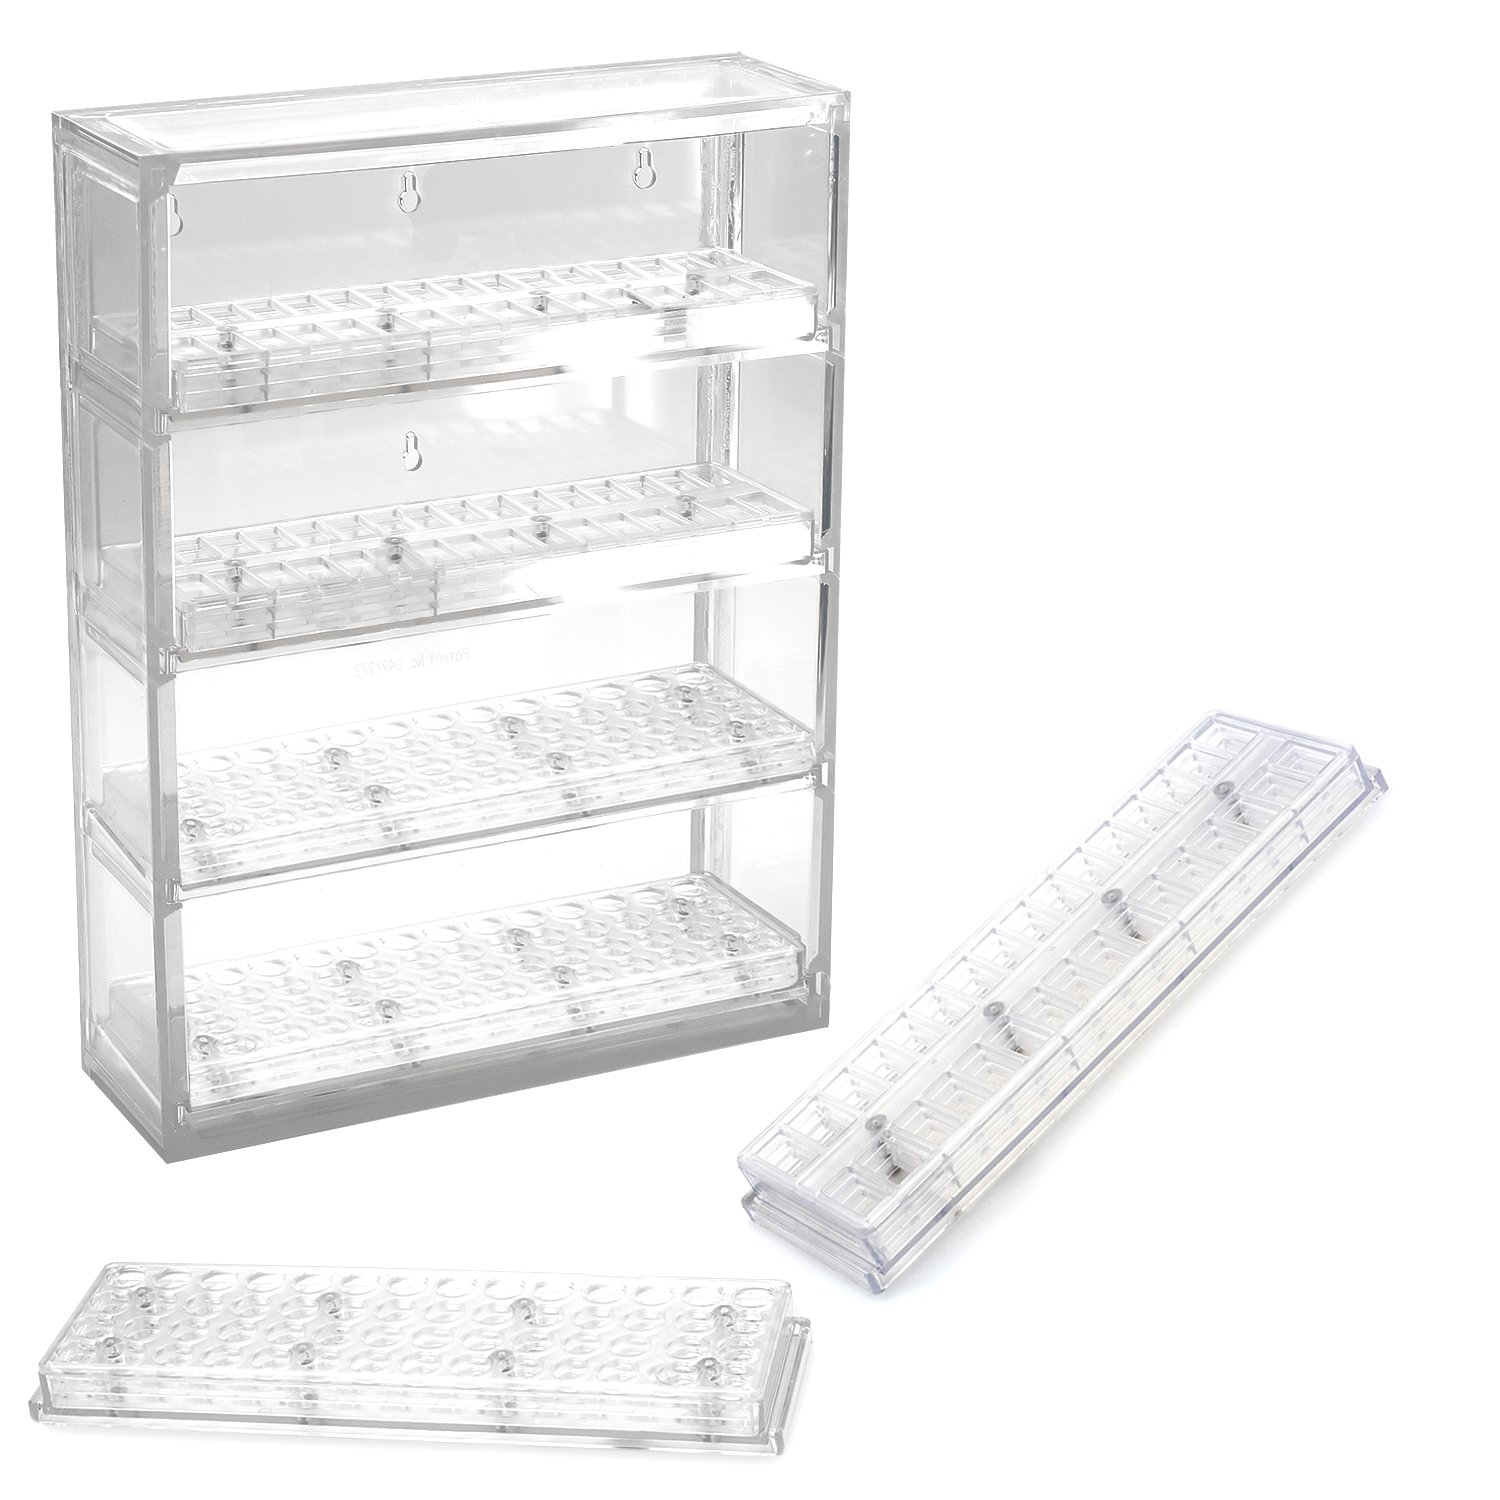 Bead Pavilion Showcase with 2 Round and 2 Flip Top Shelves by Sova